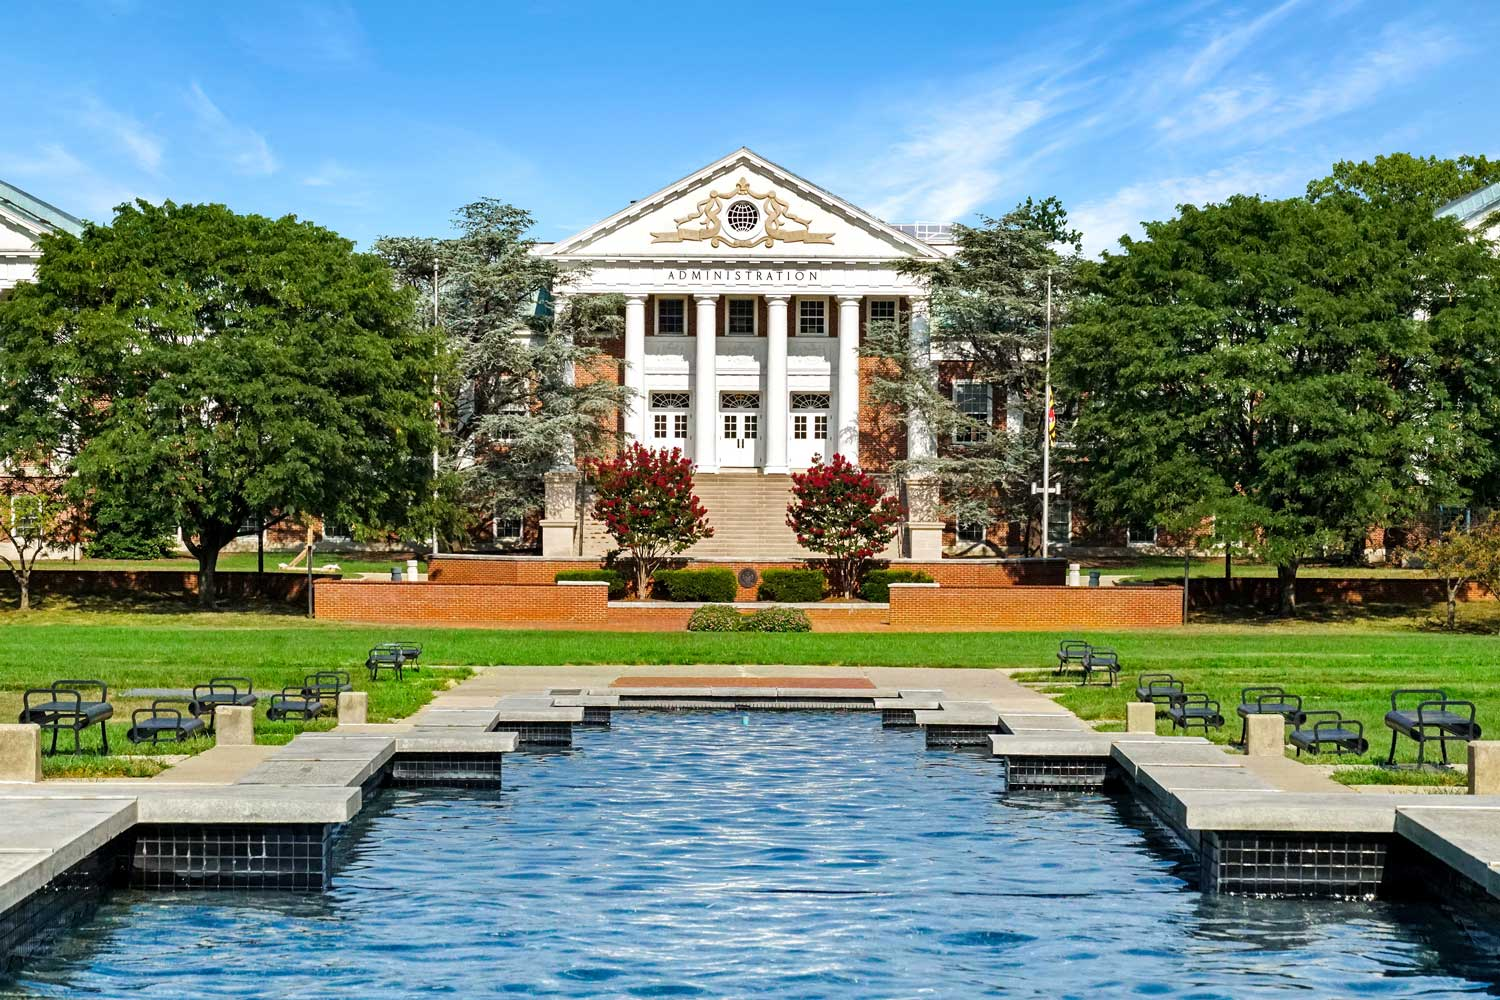 20 minutes to University of Maryland, College Park